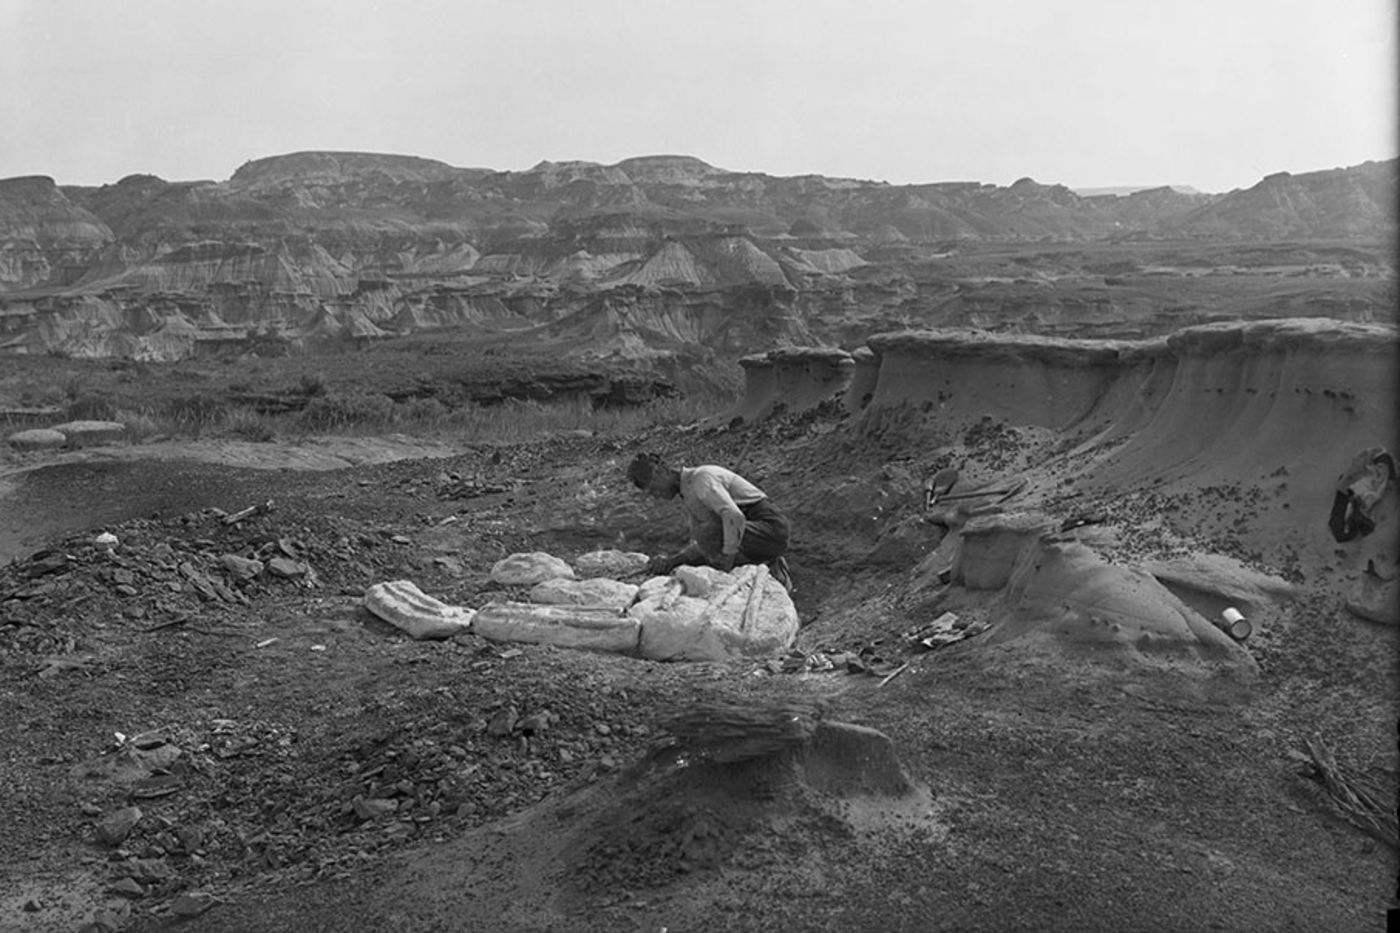 Black-and-white photo of a man in a rocky ditch, leaning over several large bundles covered in white plaster. There are mountains in the background.